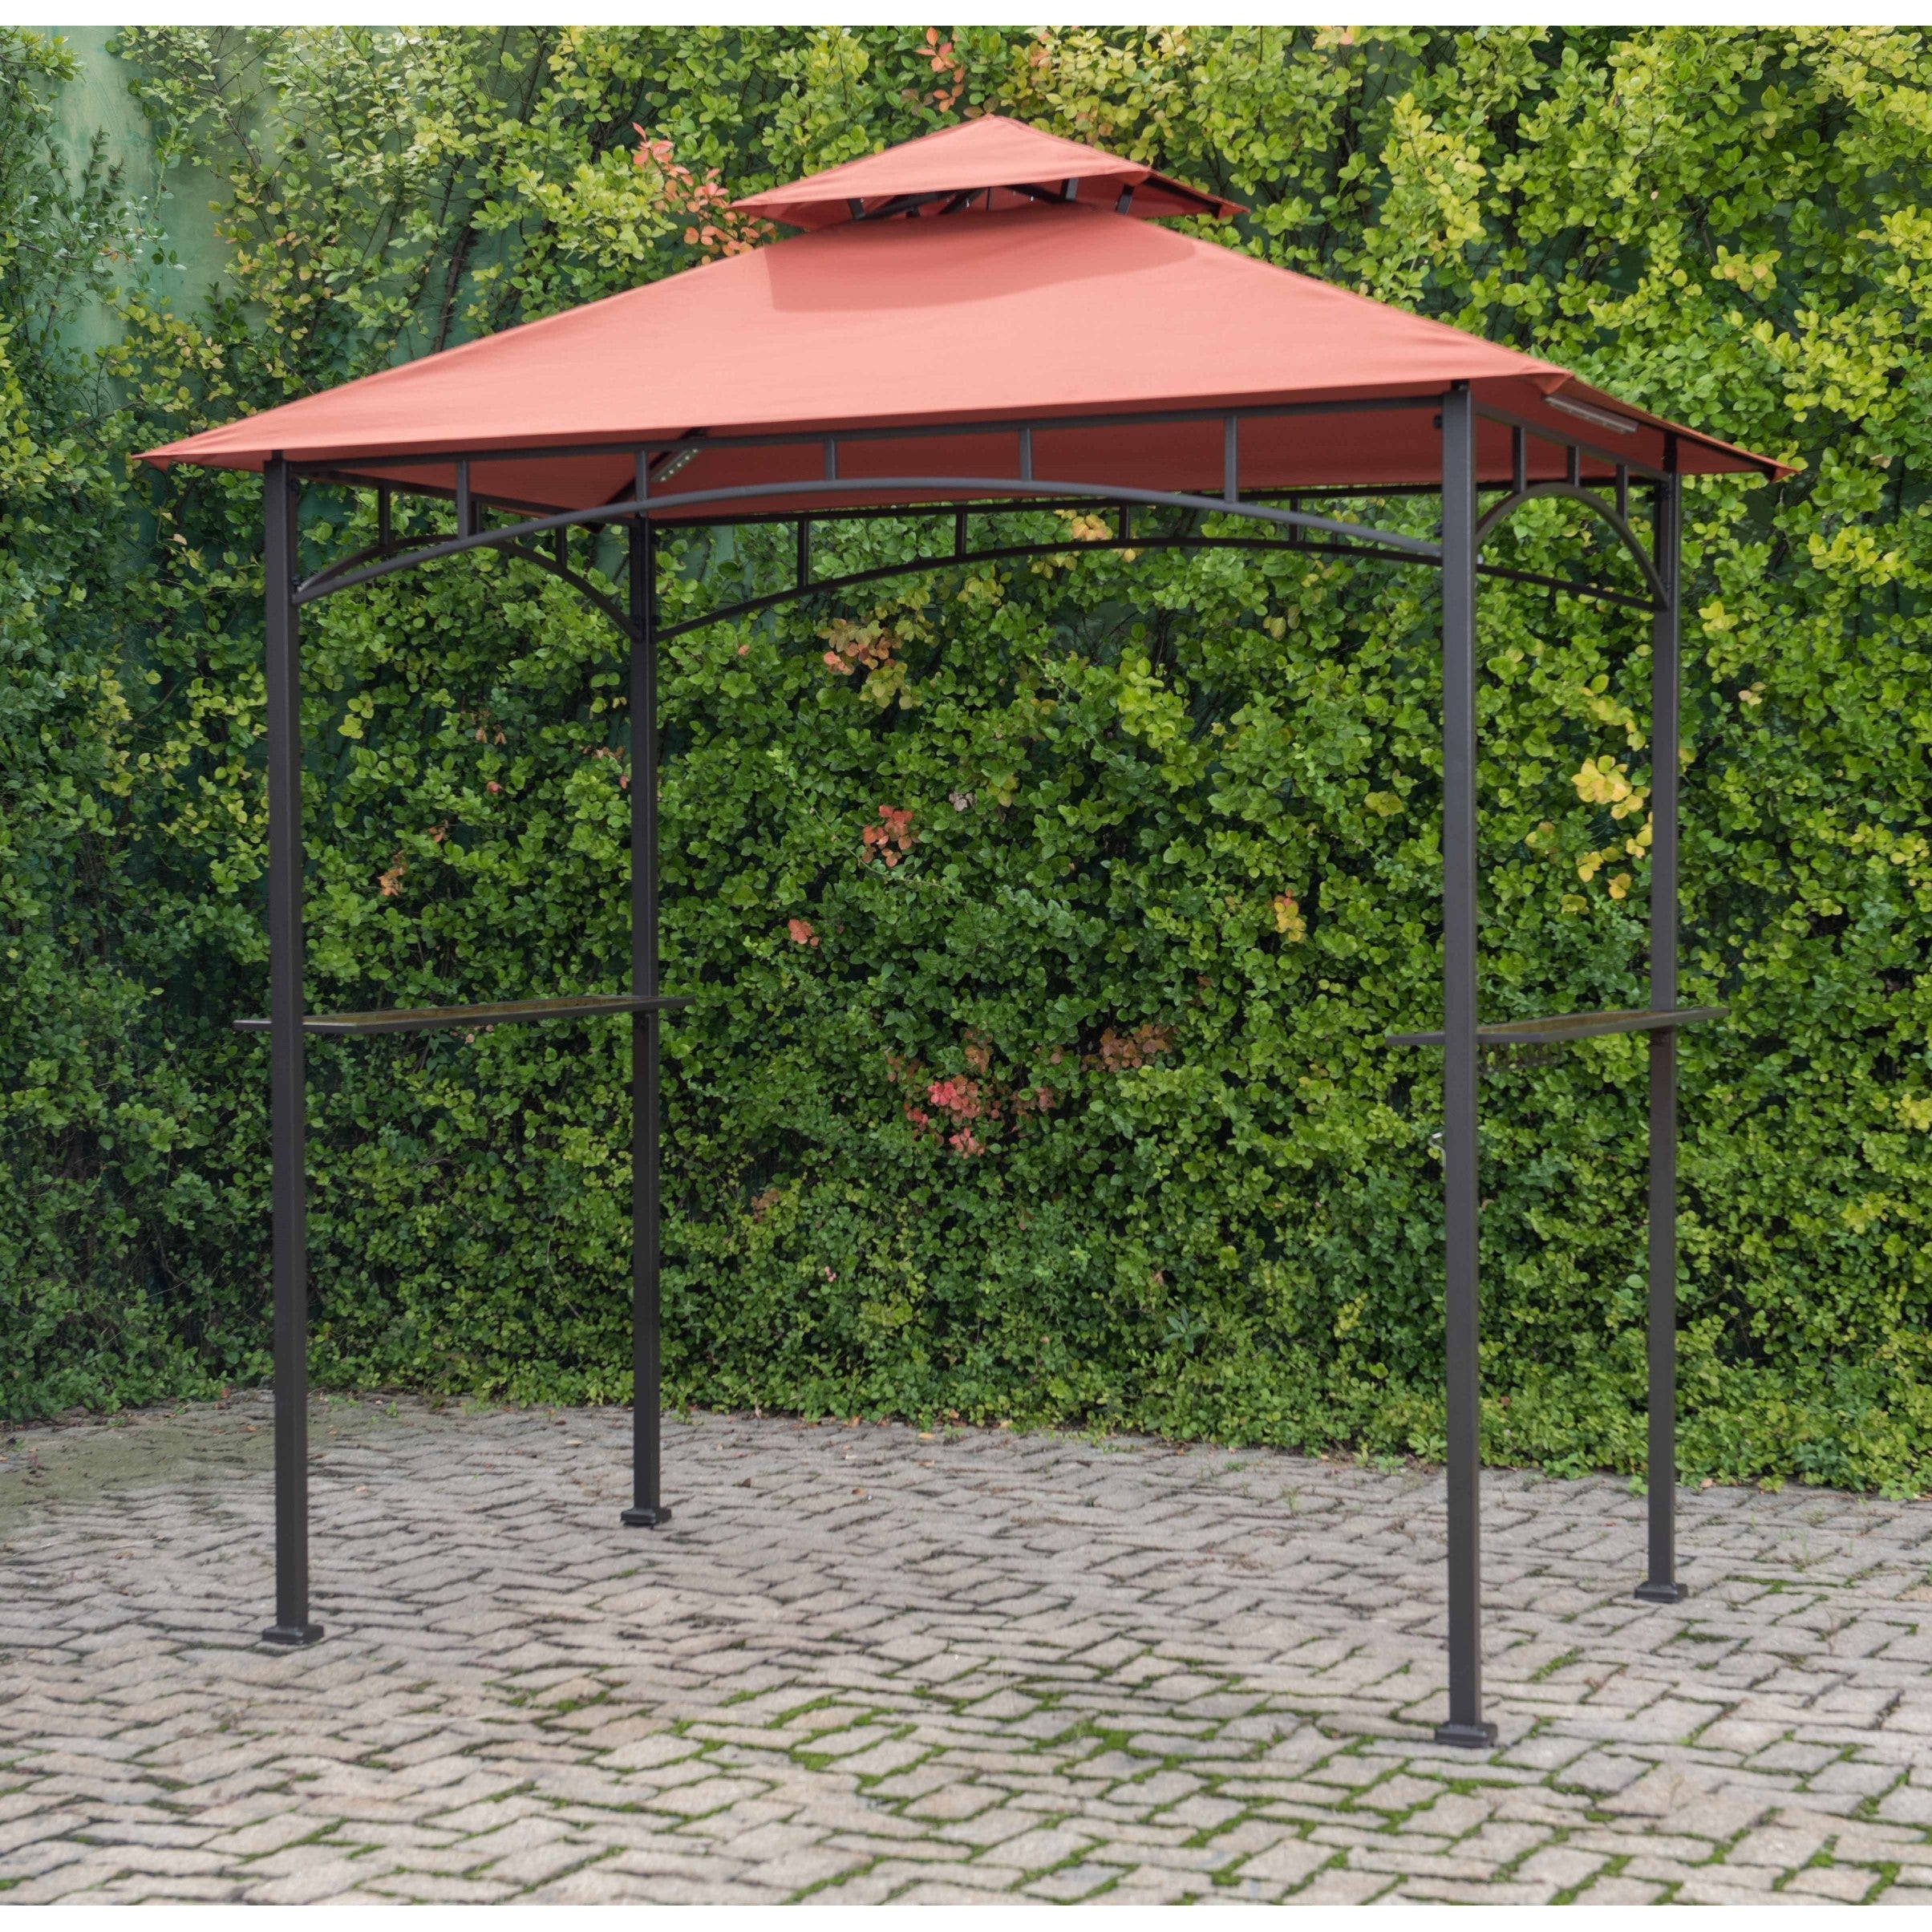 co gazebo garden bbq amazon dp steel party awning frame tepro uk shelter barbecue outdoors